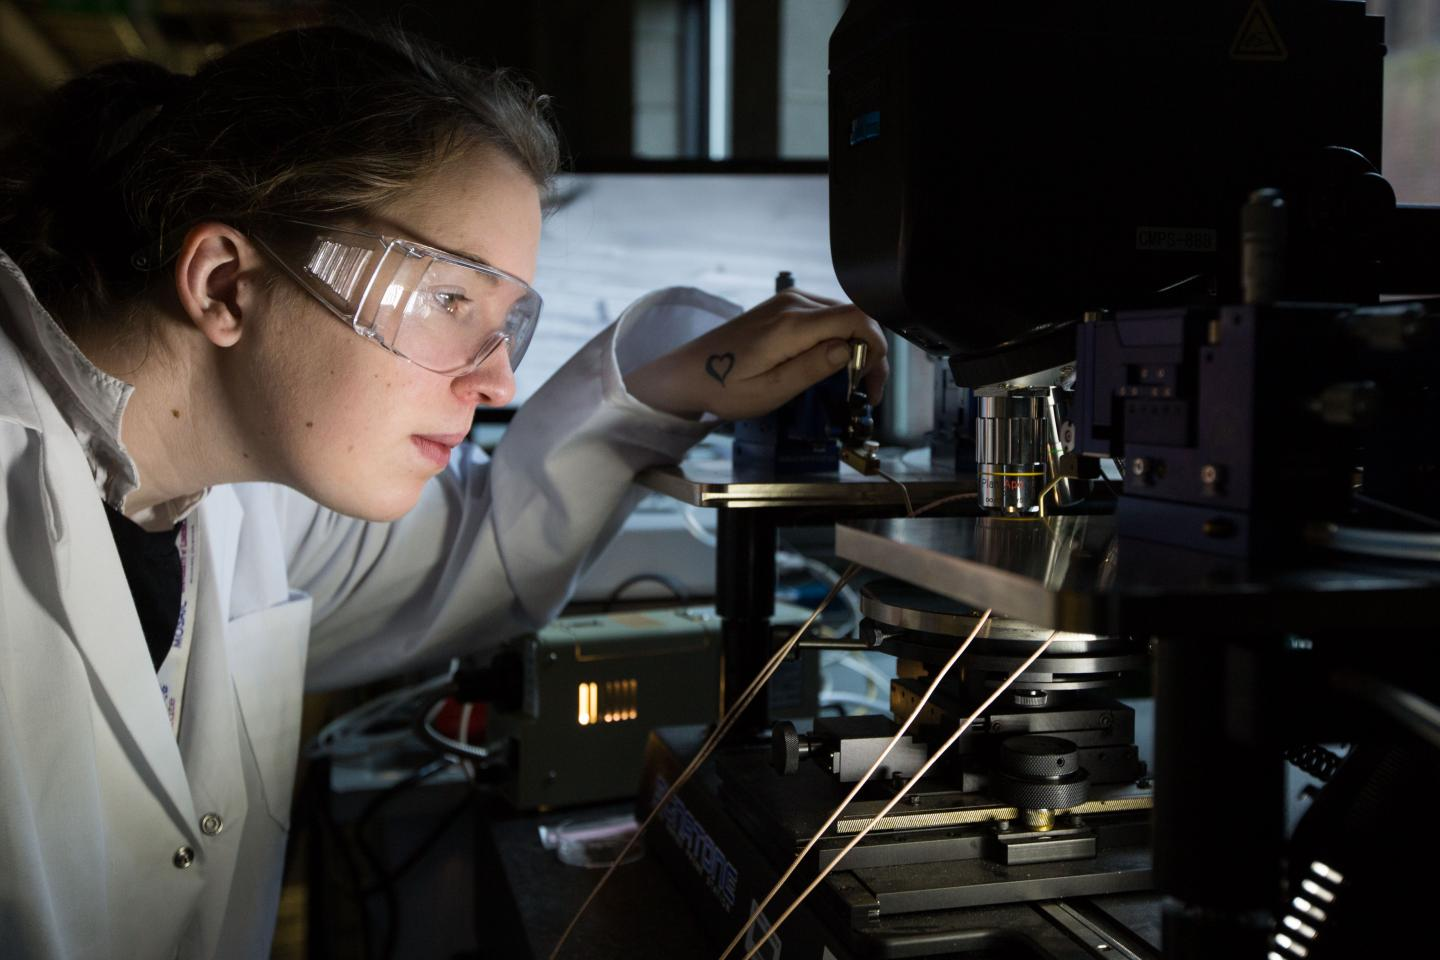 UL Researchers Generate Electricity from Low-cost Biomaterial